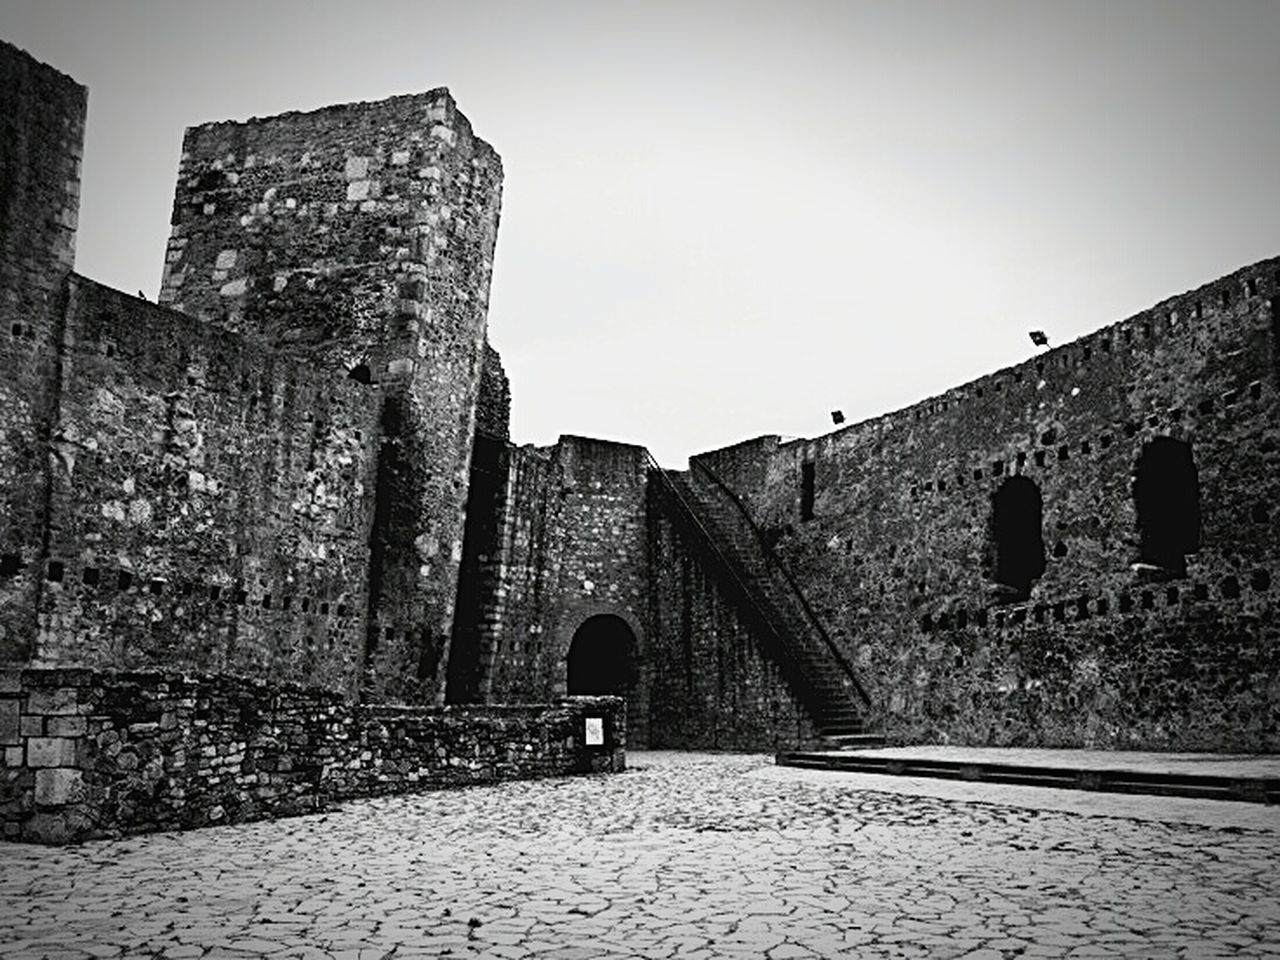 Fortress of Smederevo, Serbia. I Love My City Fortress In Europe Fortress View Fortress Of Stone The Old Fortress Smederevo Made In Serbia From My Point Of View Photooftheday Made By Me Popular Photos Capture The Moment Silhouette Collection On Vacation Travelling Photography Stone Fortress Fortress Europe Travel Photography Love❤ For The Love Of Black And White Discovering Great Works